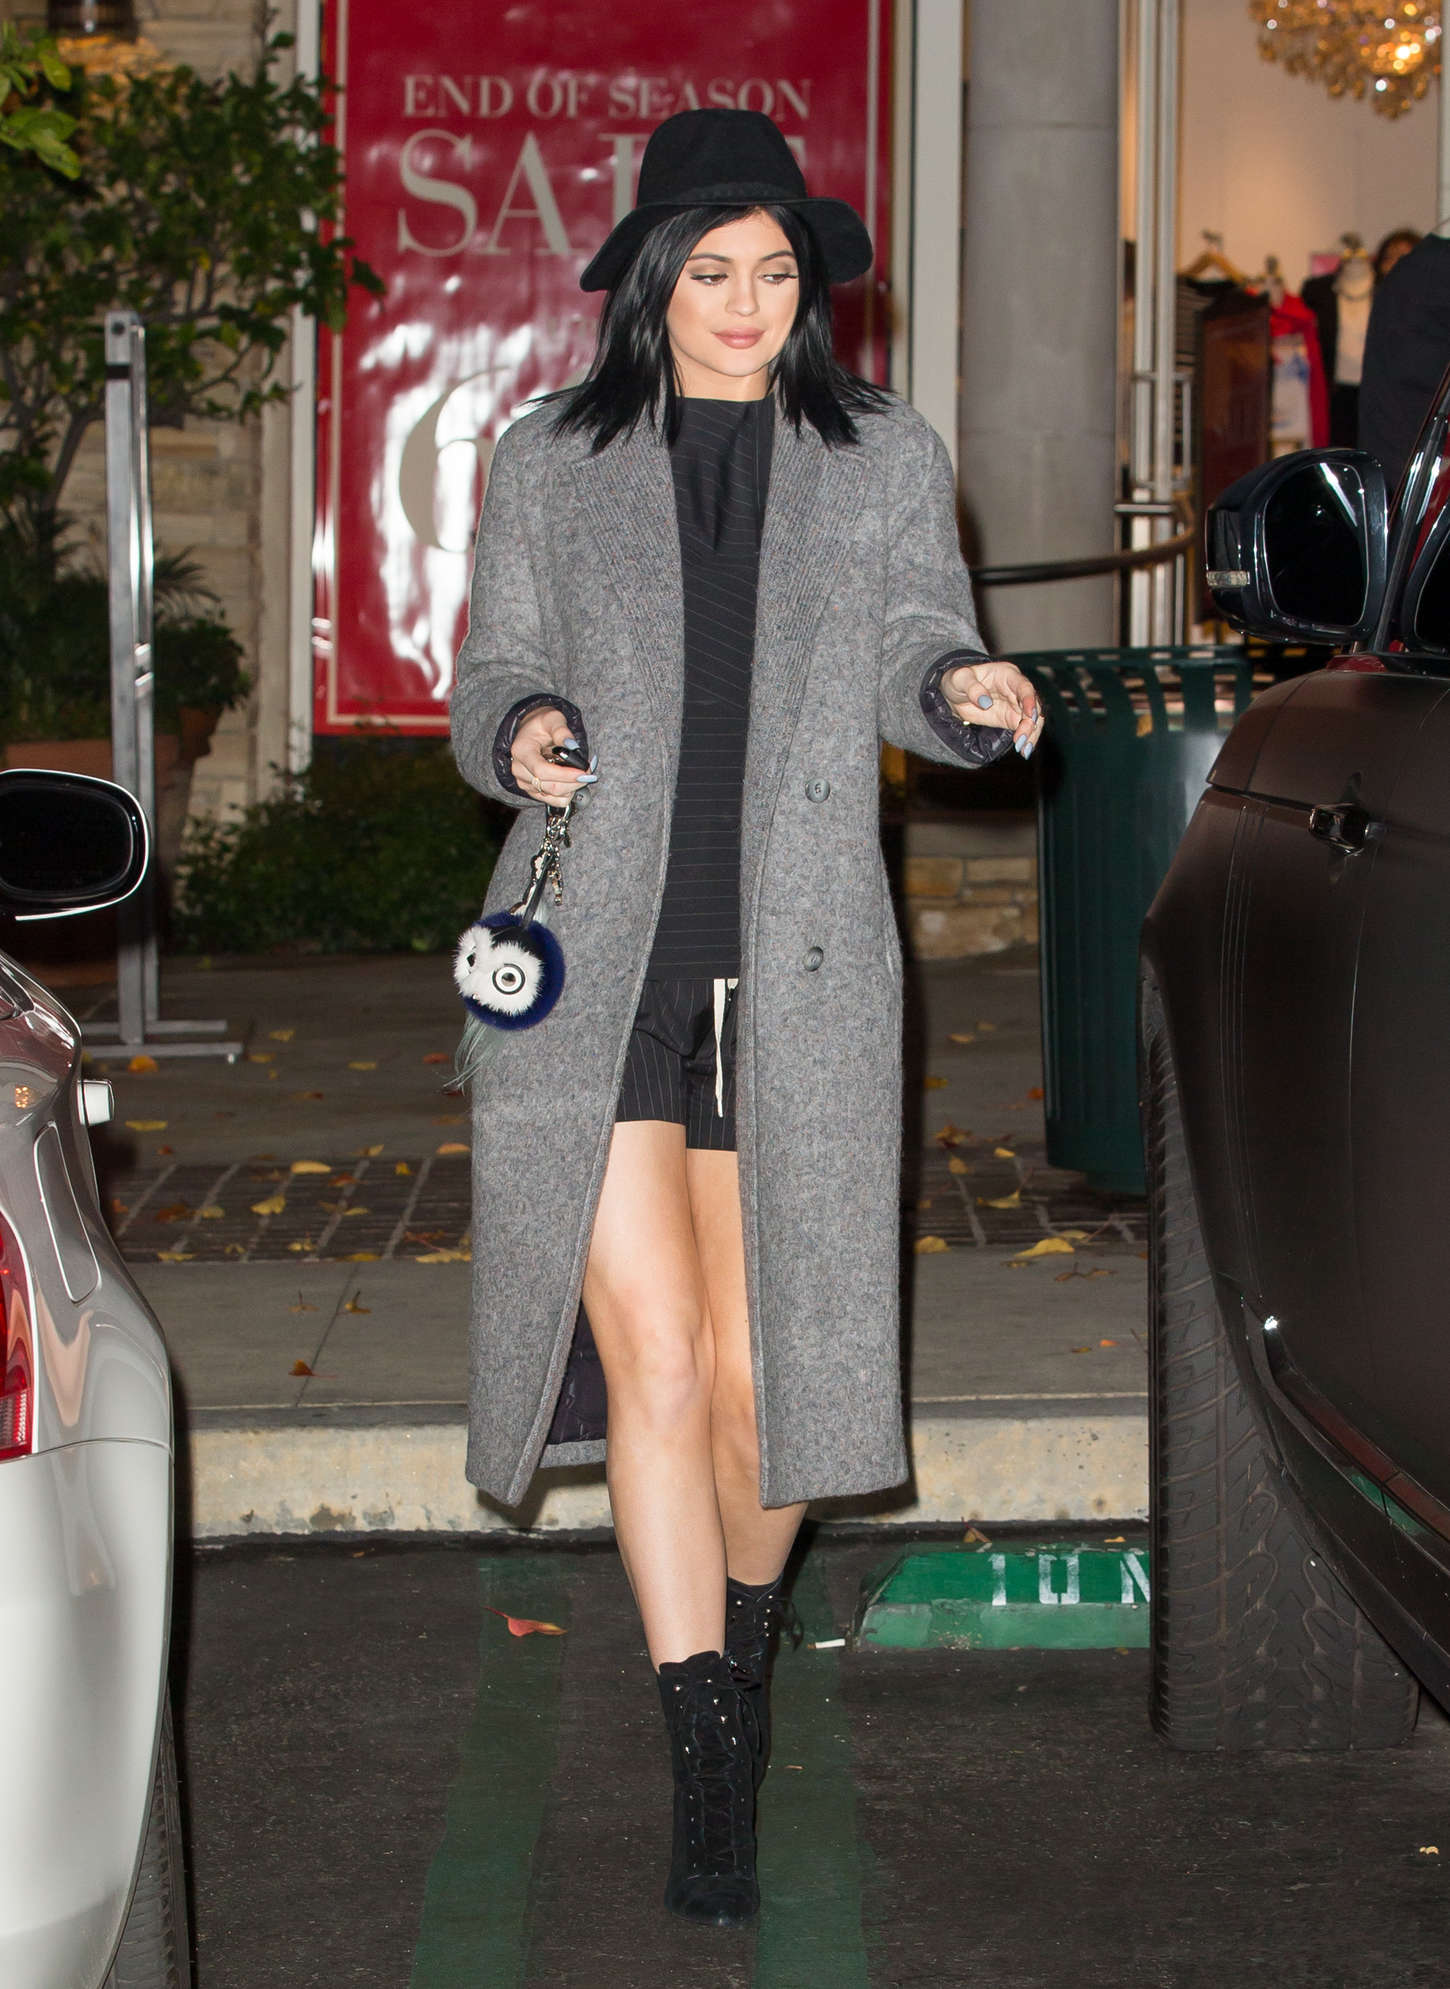 Kylie Jenner - Out and about in Calabasas